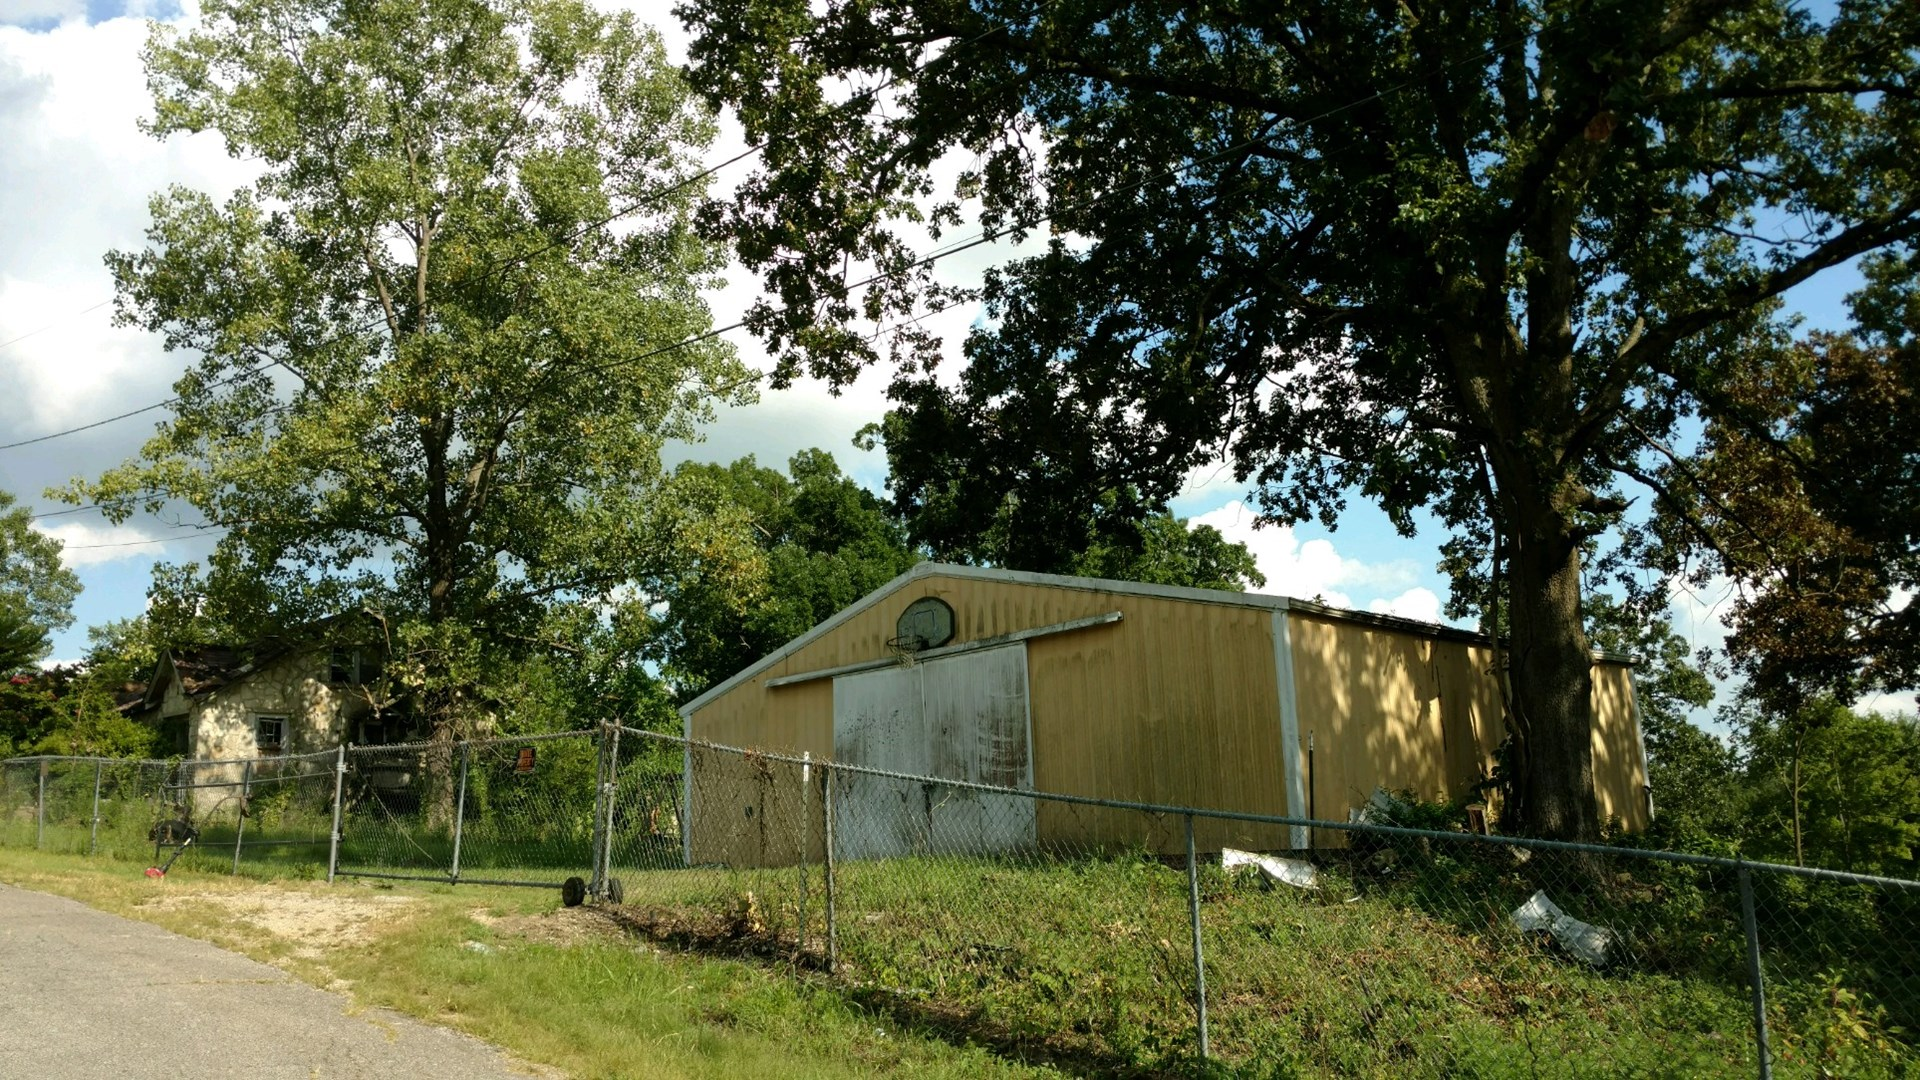 Investment Property in Northeast Arkansas For Sale